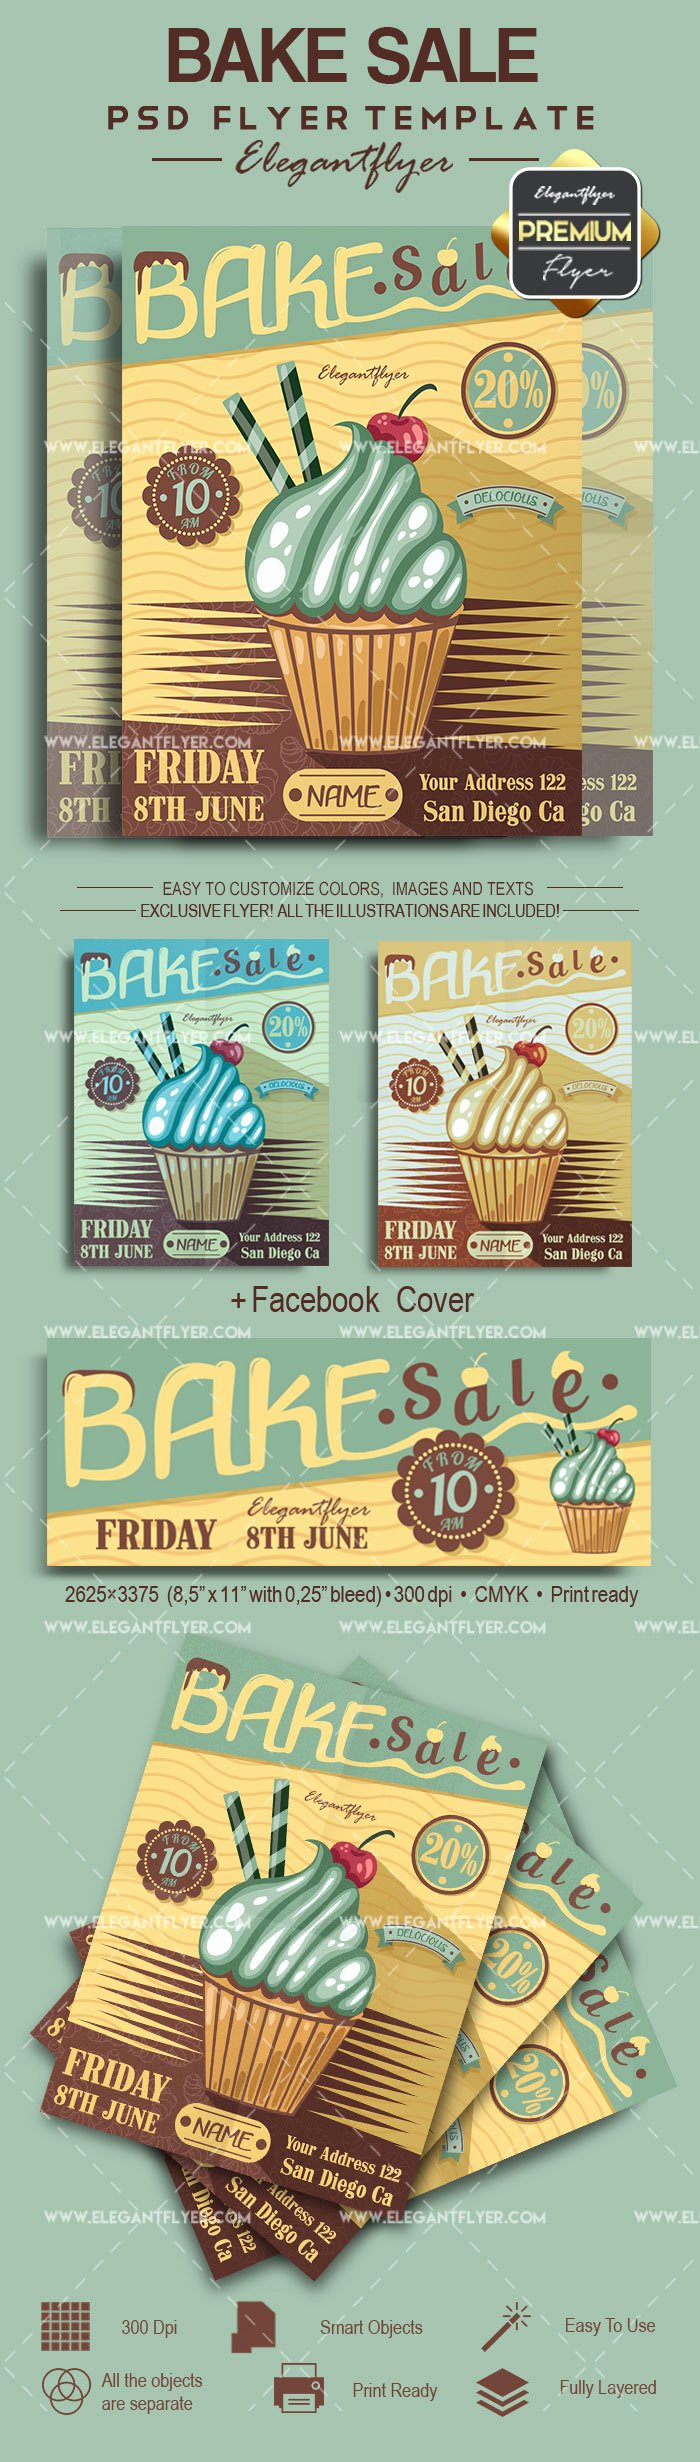 Bake Sale Psd Poster – by Elegantflyer